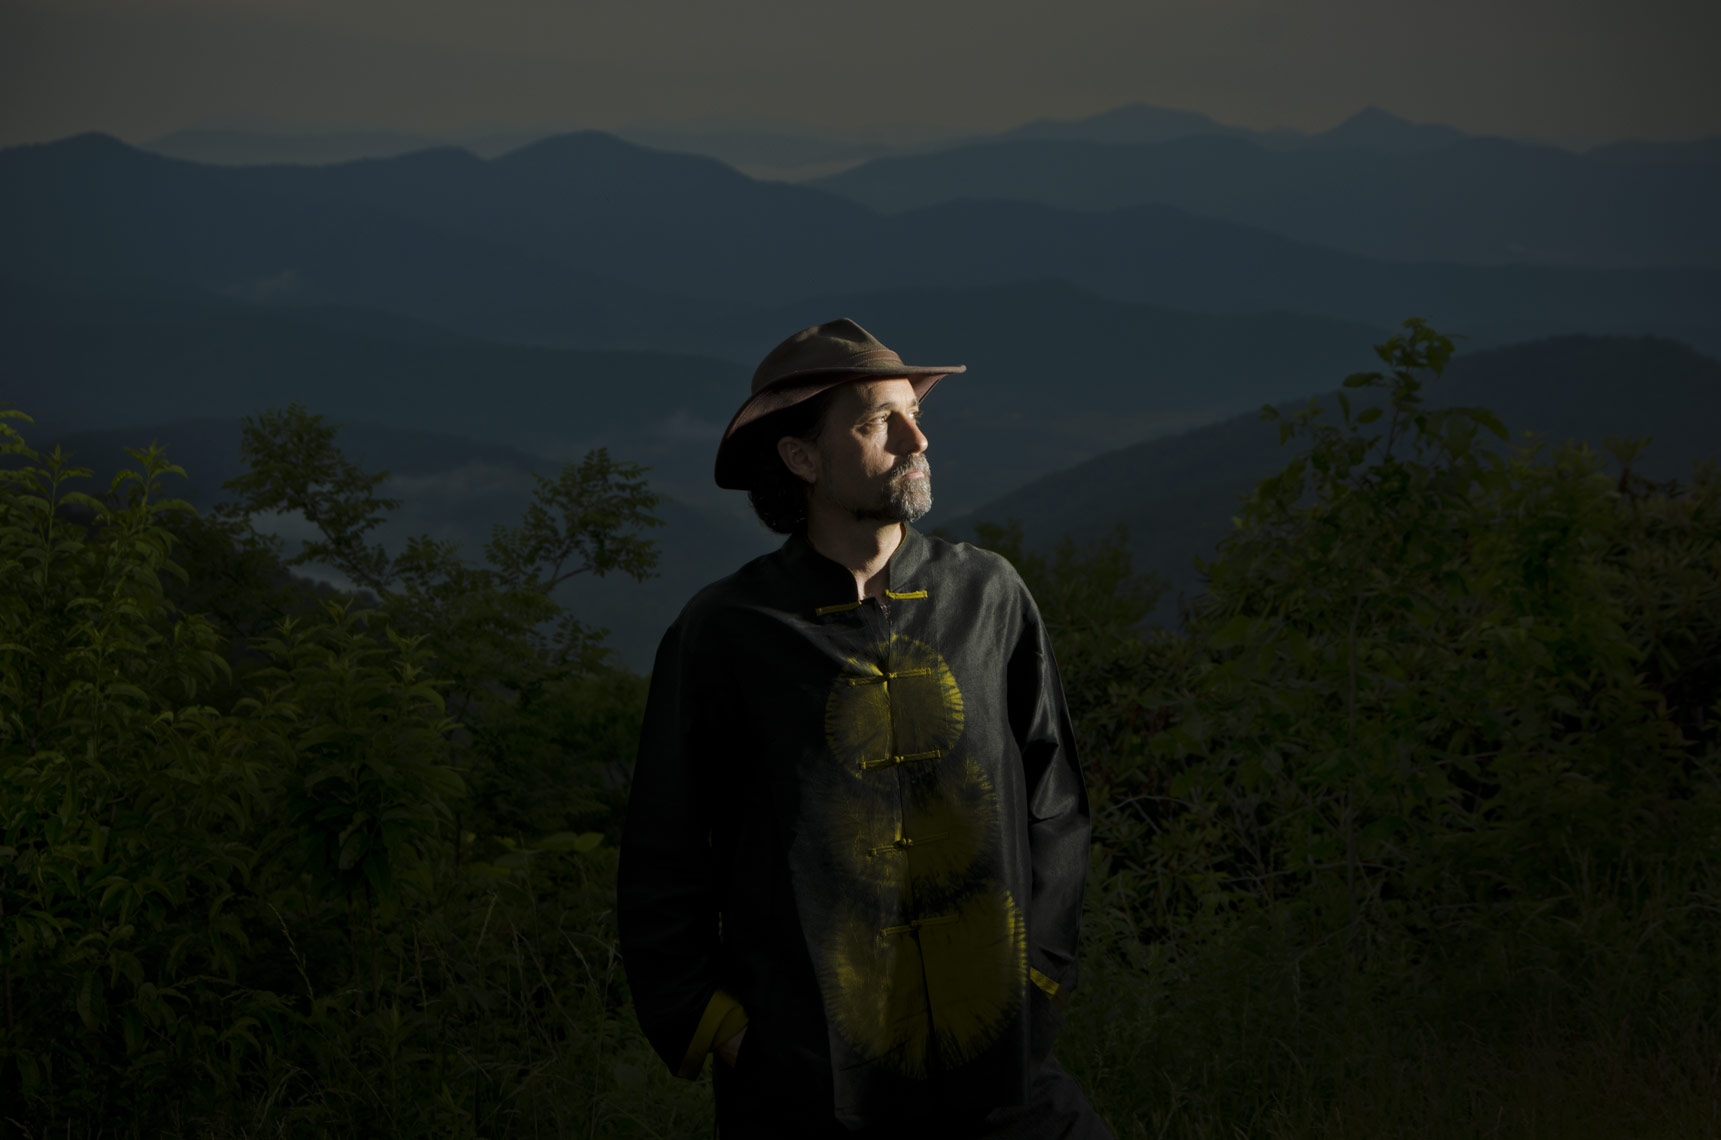 Commercial Portrait photographer Ian Curcio shot on the Blue Ridge Parkway.